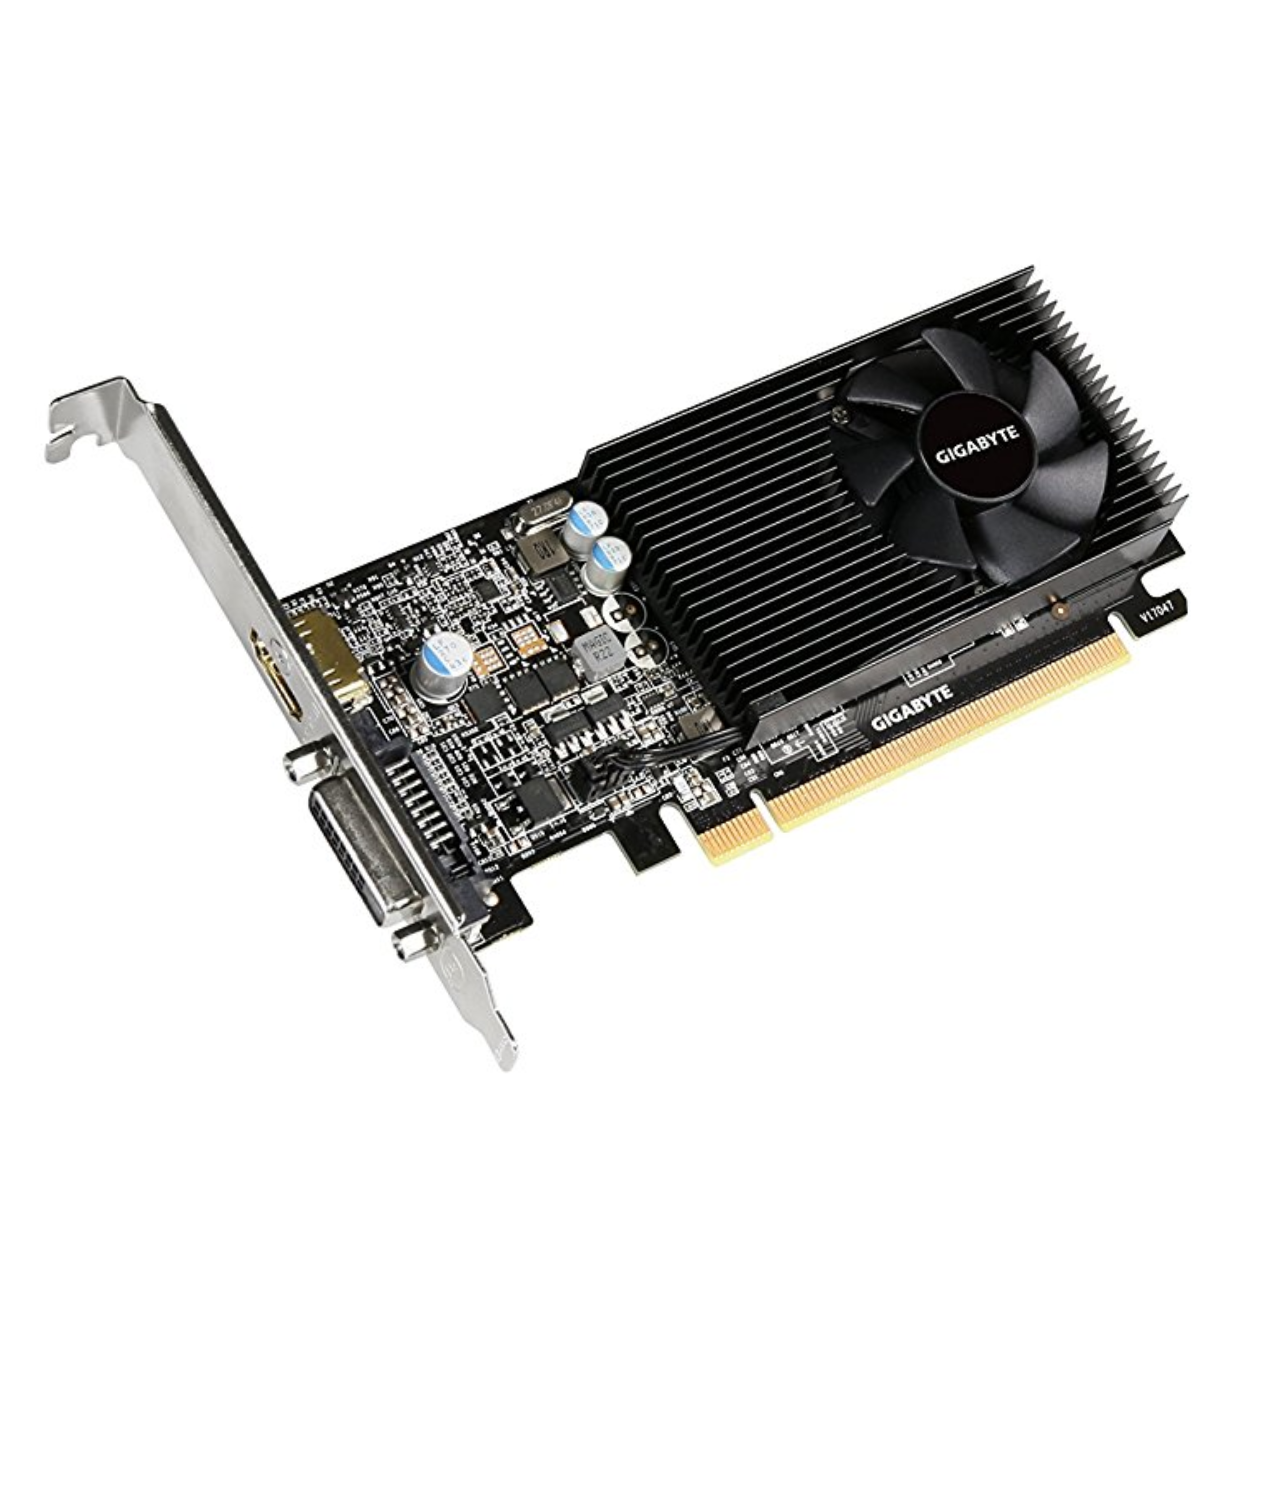 Gigabyte Geforce Gt 1030 2gb Gddr5 Graphics Card Tech Architects Asus Ddr5